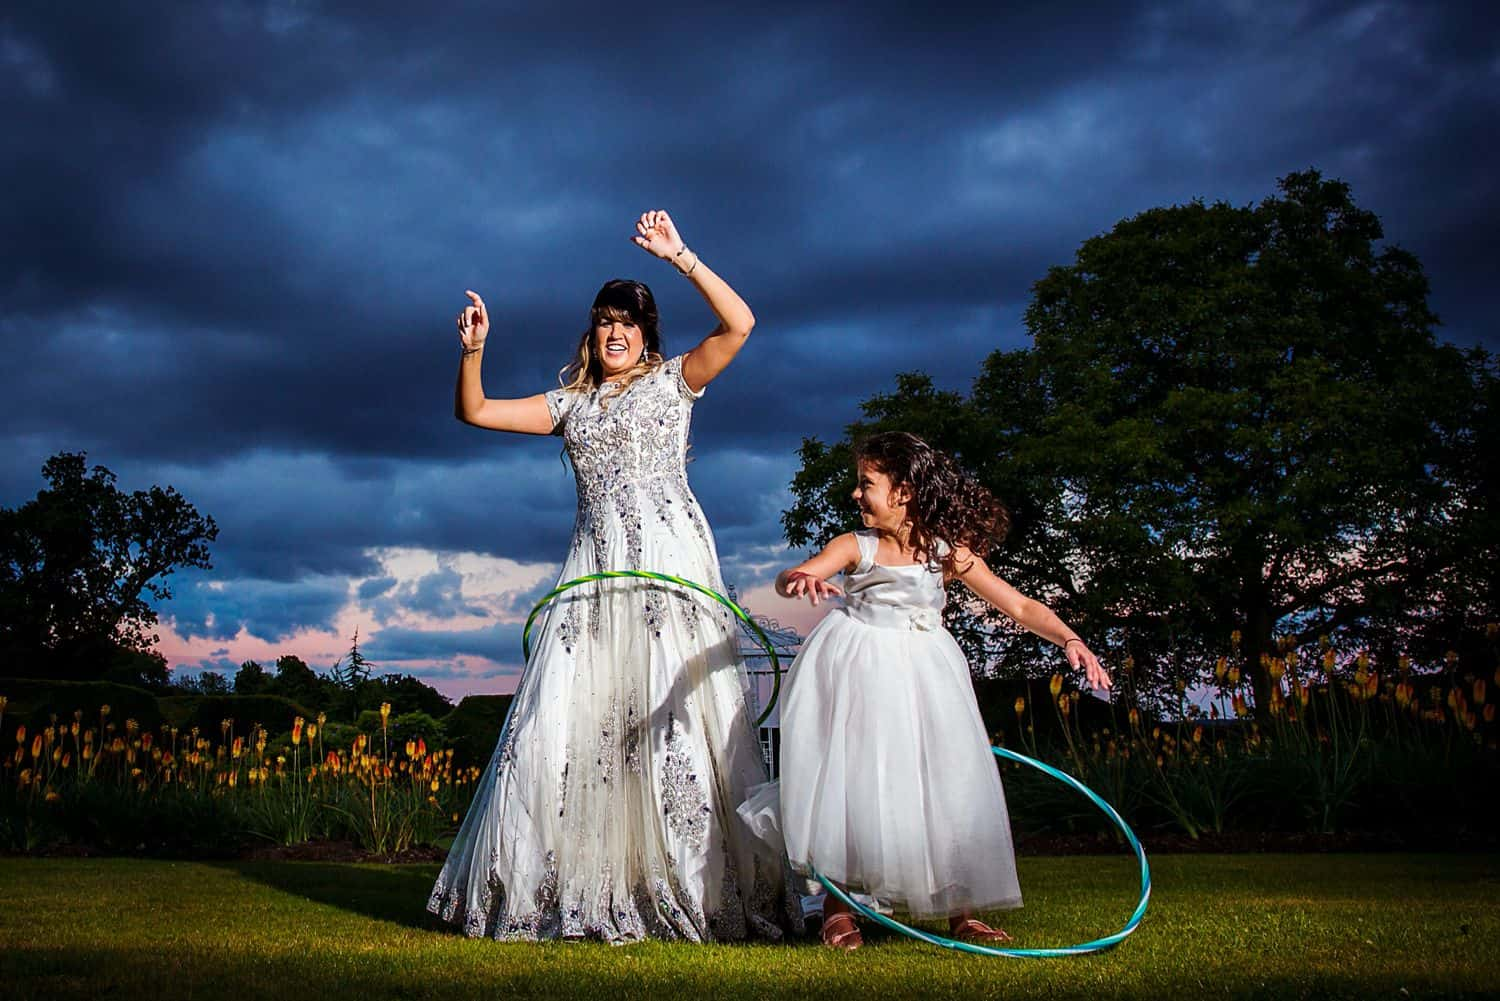 A bride and her flower girl twirl hula hoops at sunset